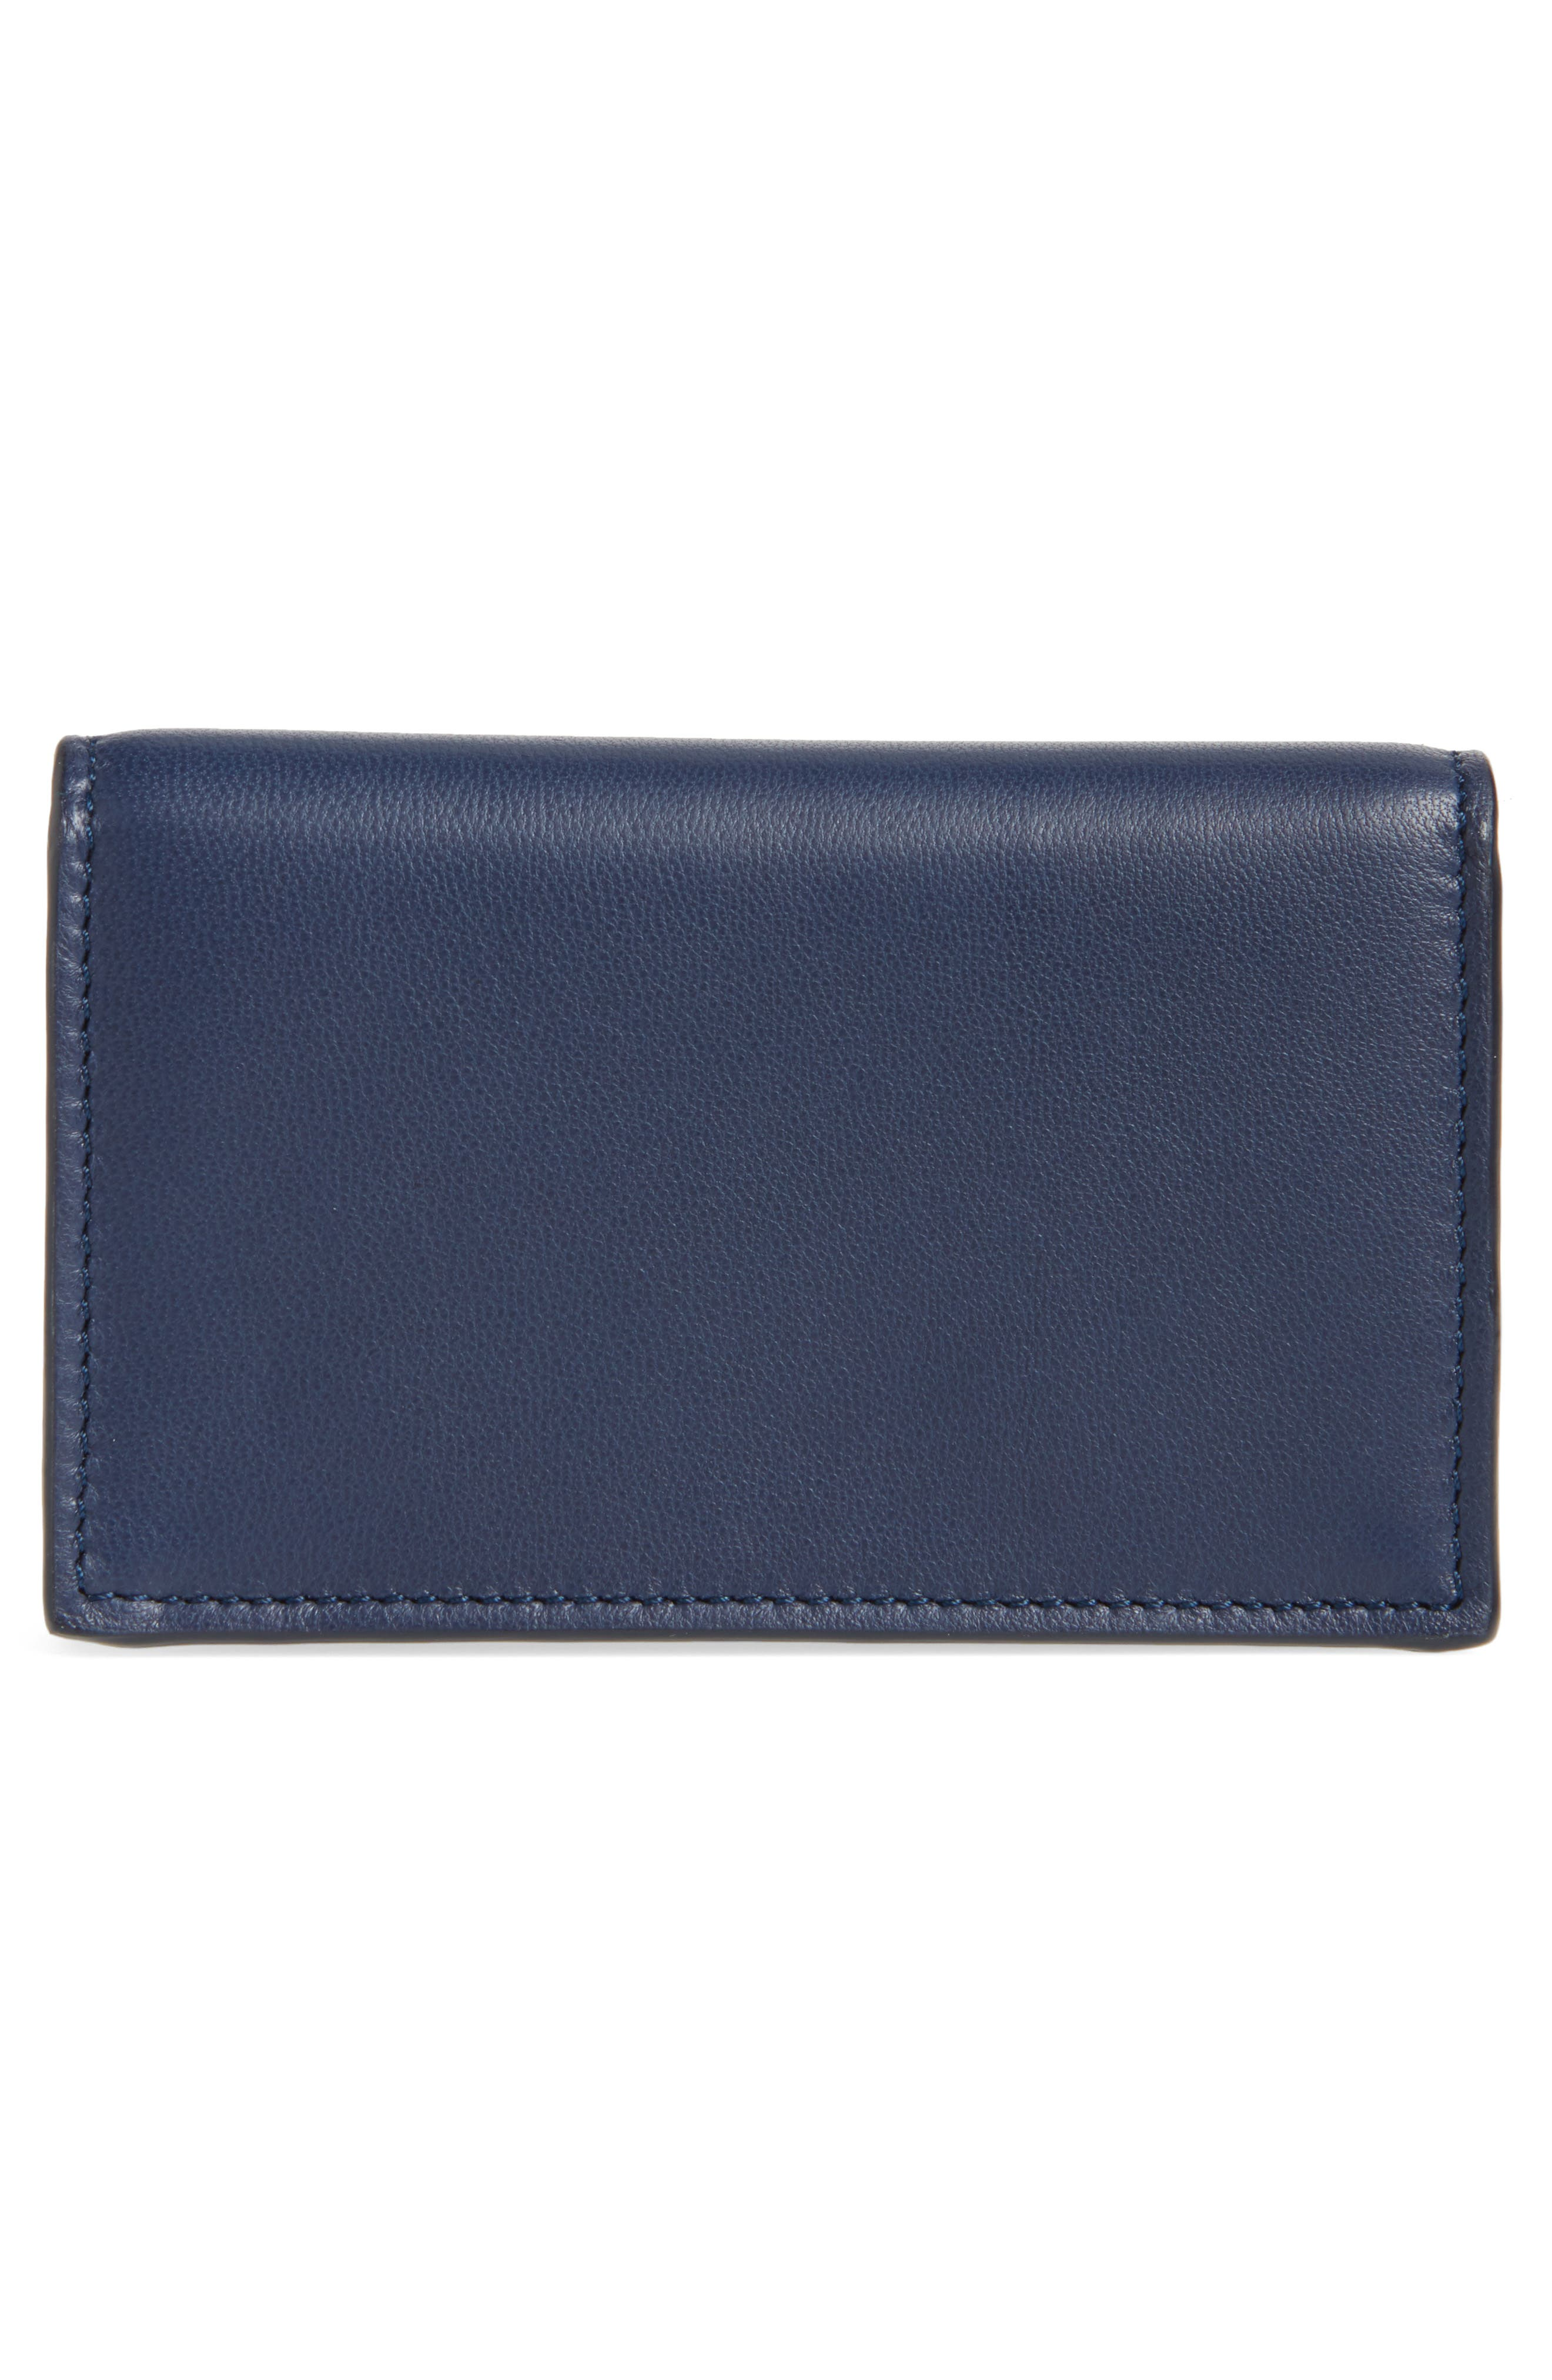 Calfskin Leather Business Card Case,                             Alternate thumbnail 2, color,                             429